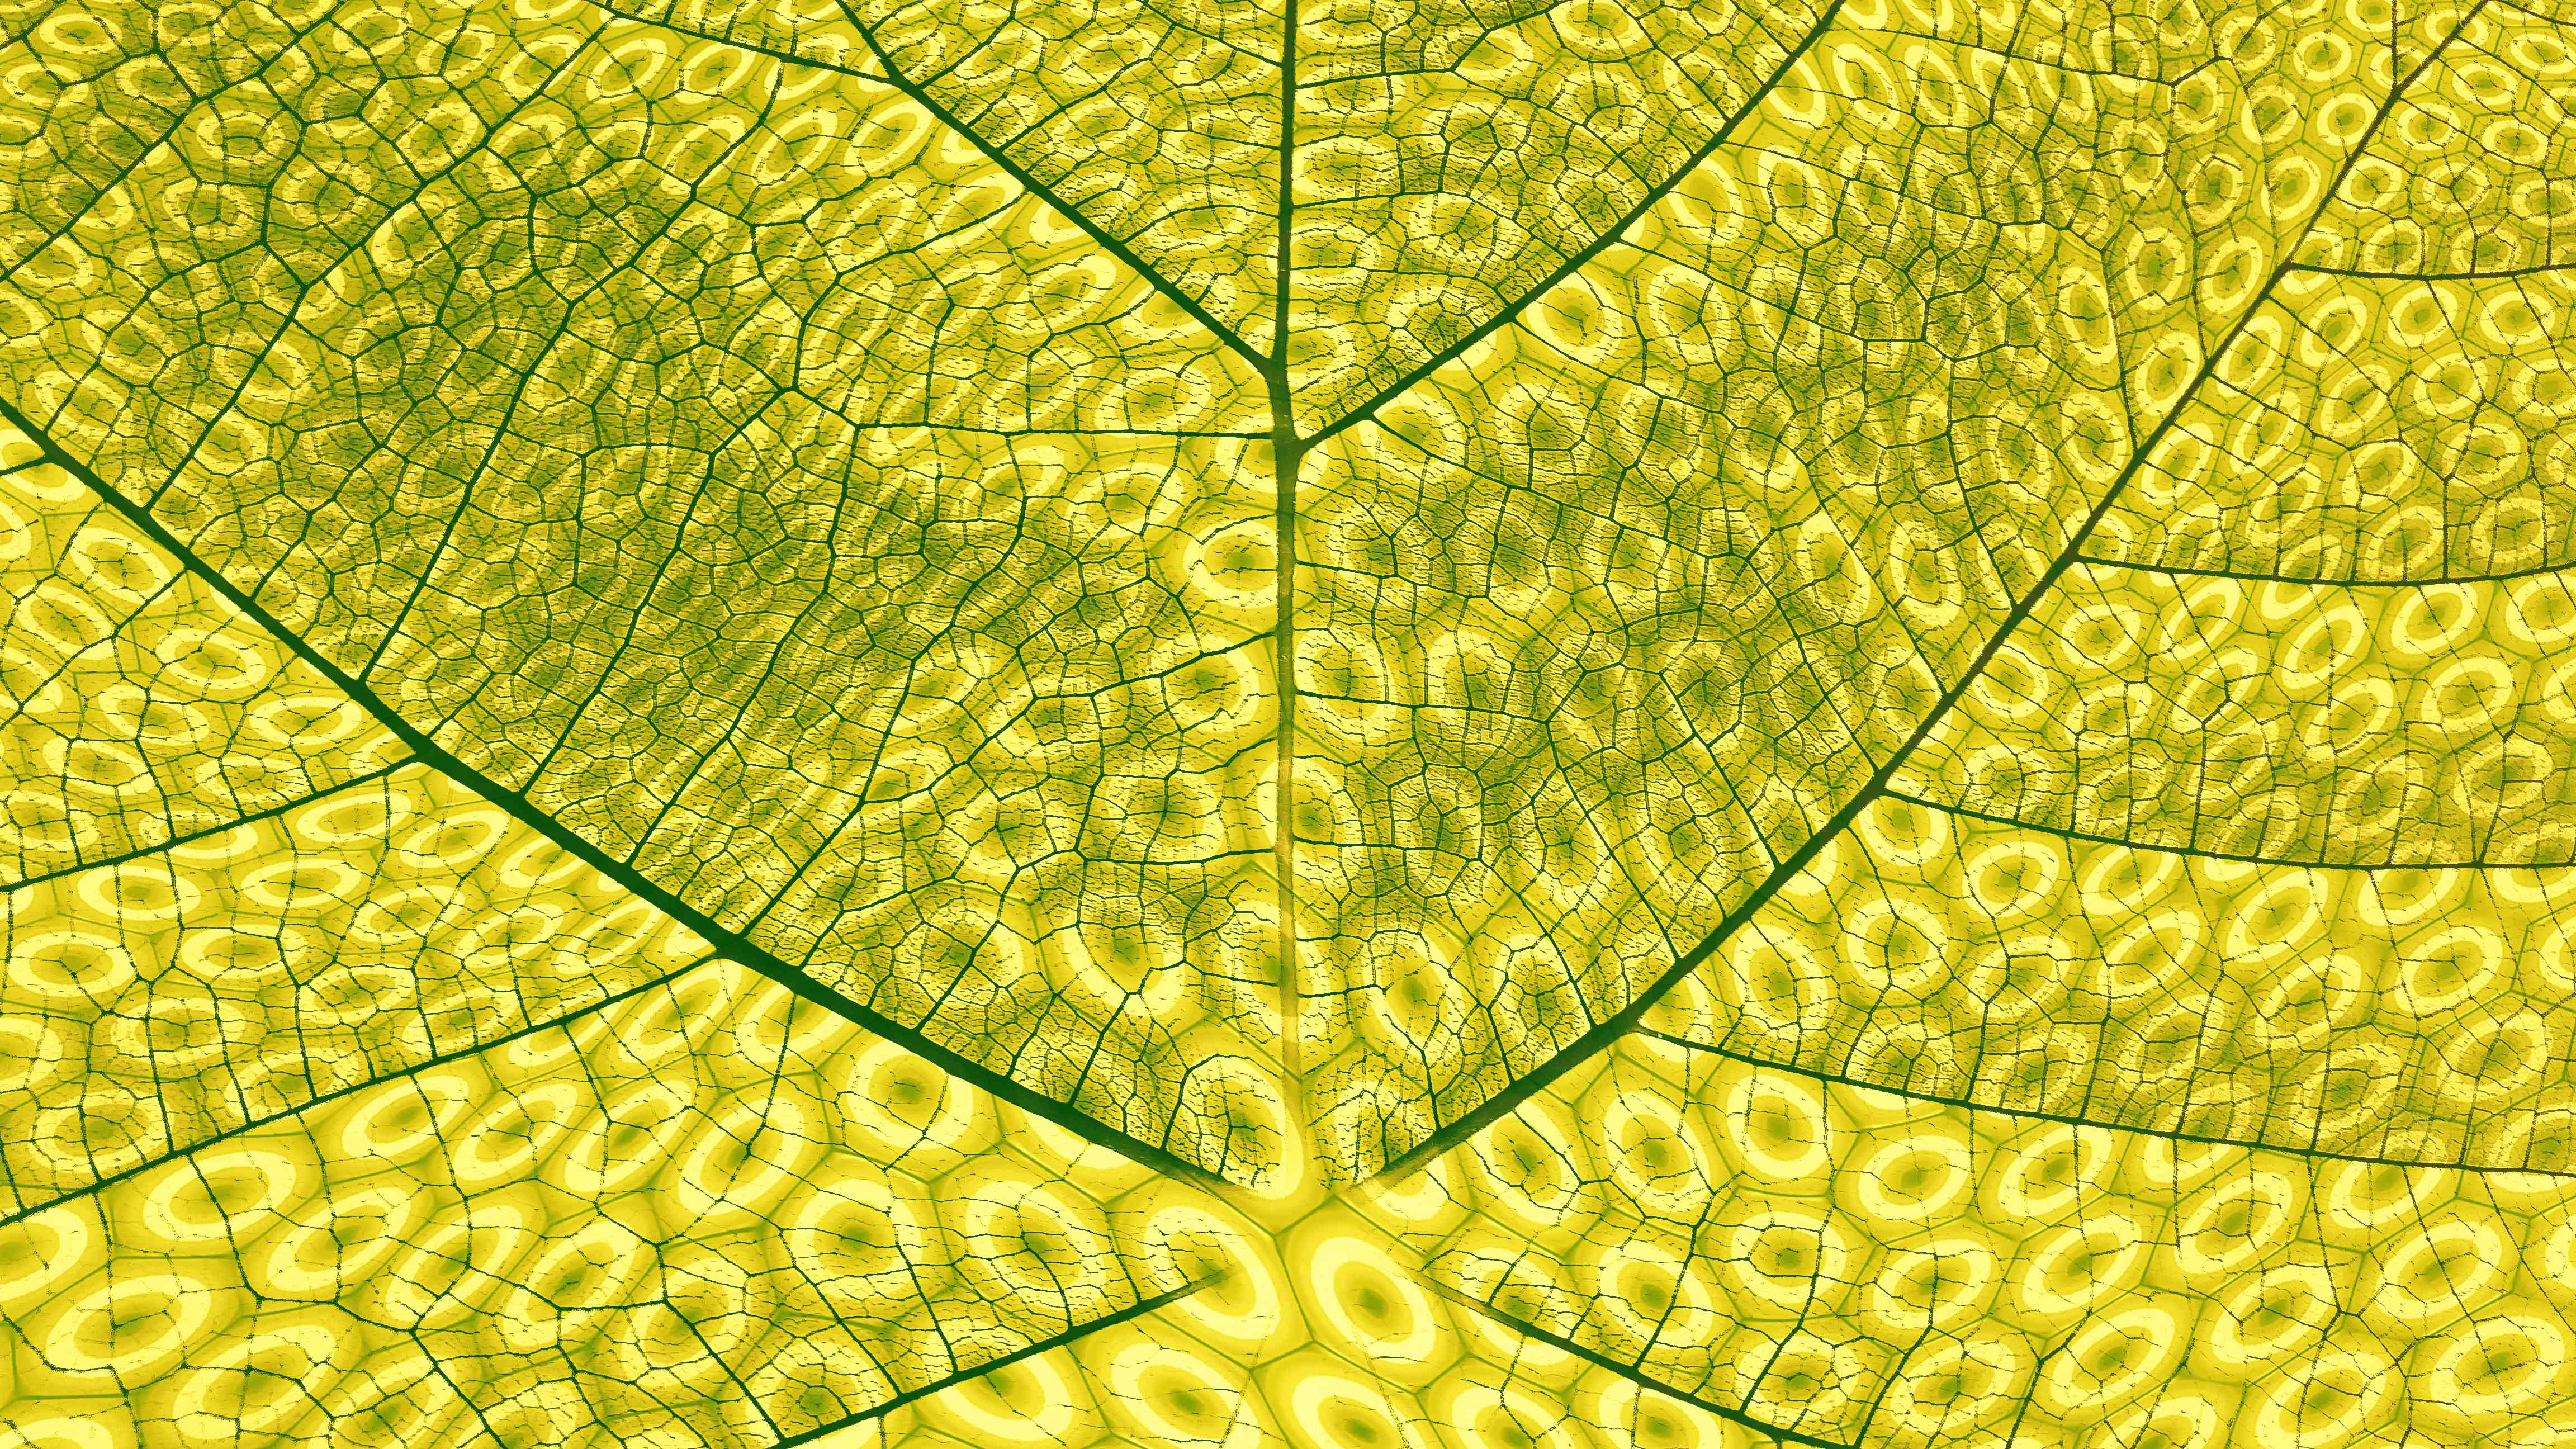 Close-up of leaf showing photosynthesisi